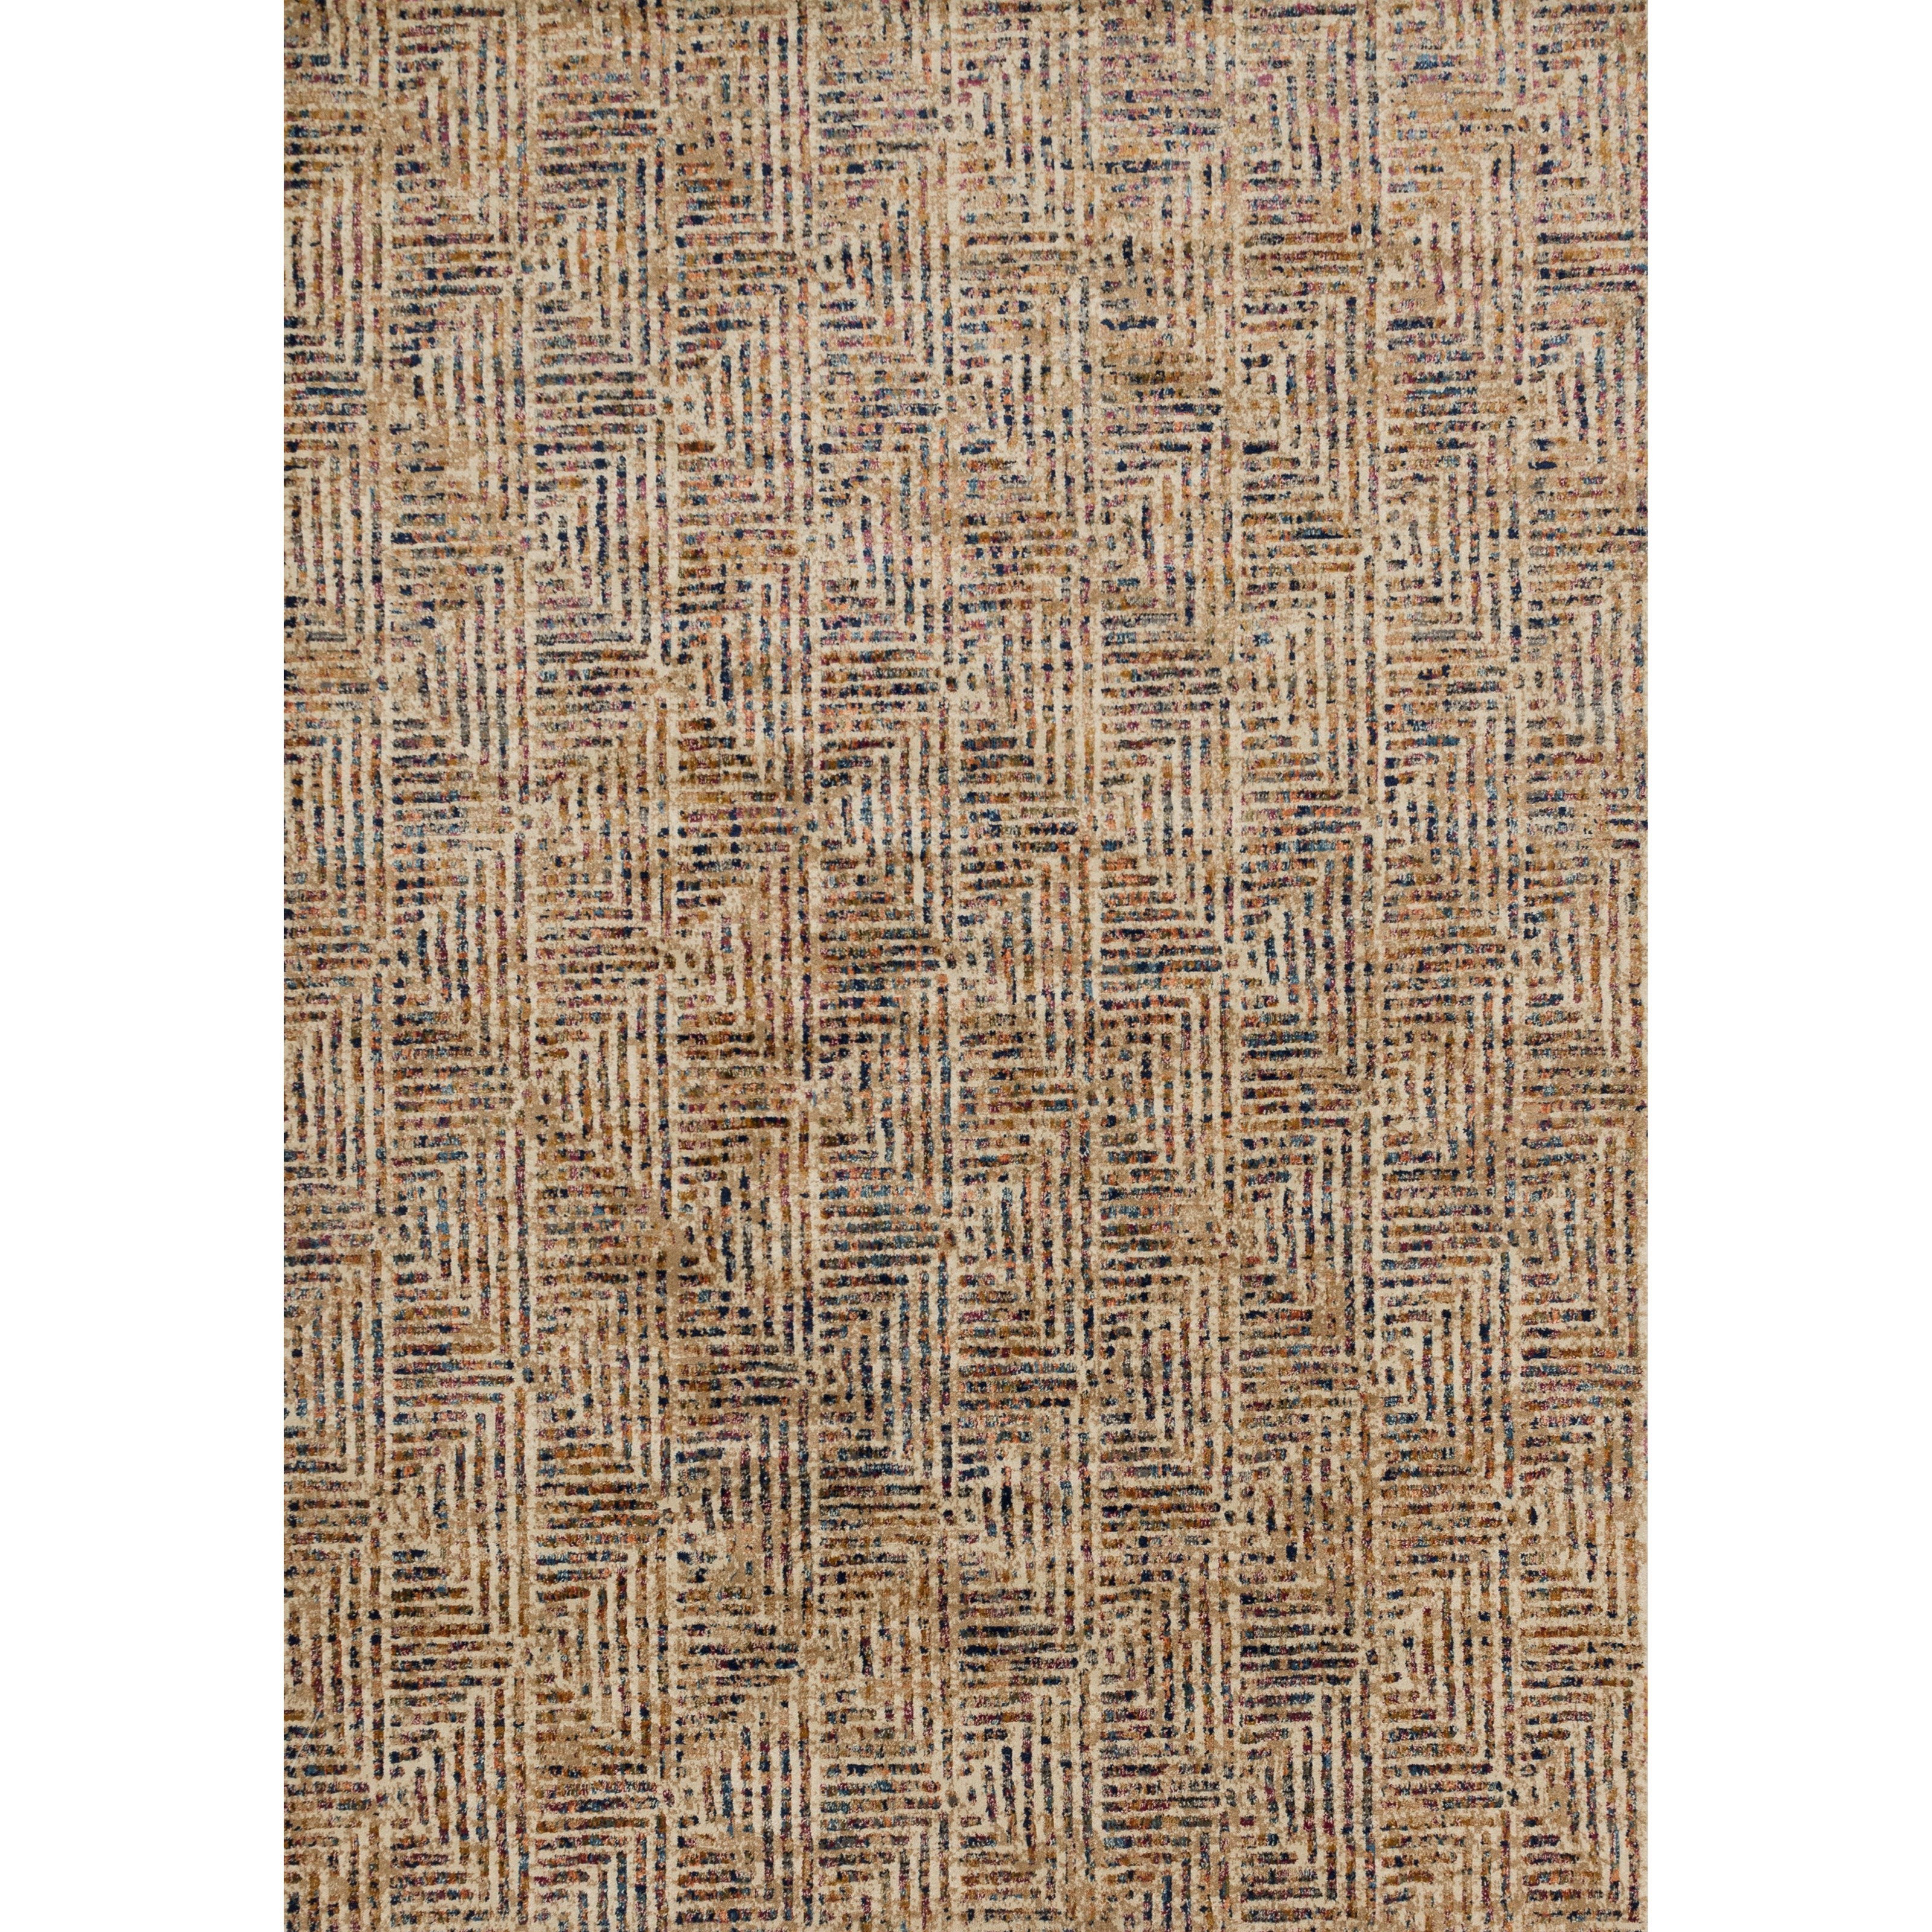 """DREAMSCAPE 1'6"""" x 1'6""""  Ivory / Multi Rug by Loloi Rugs at Virginia Furniture Market"""